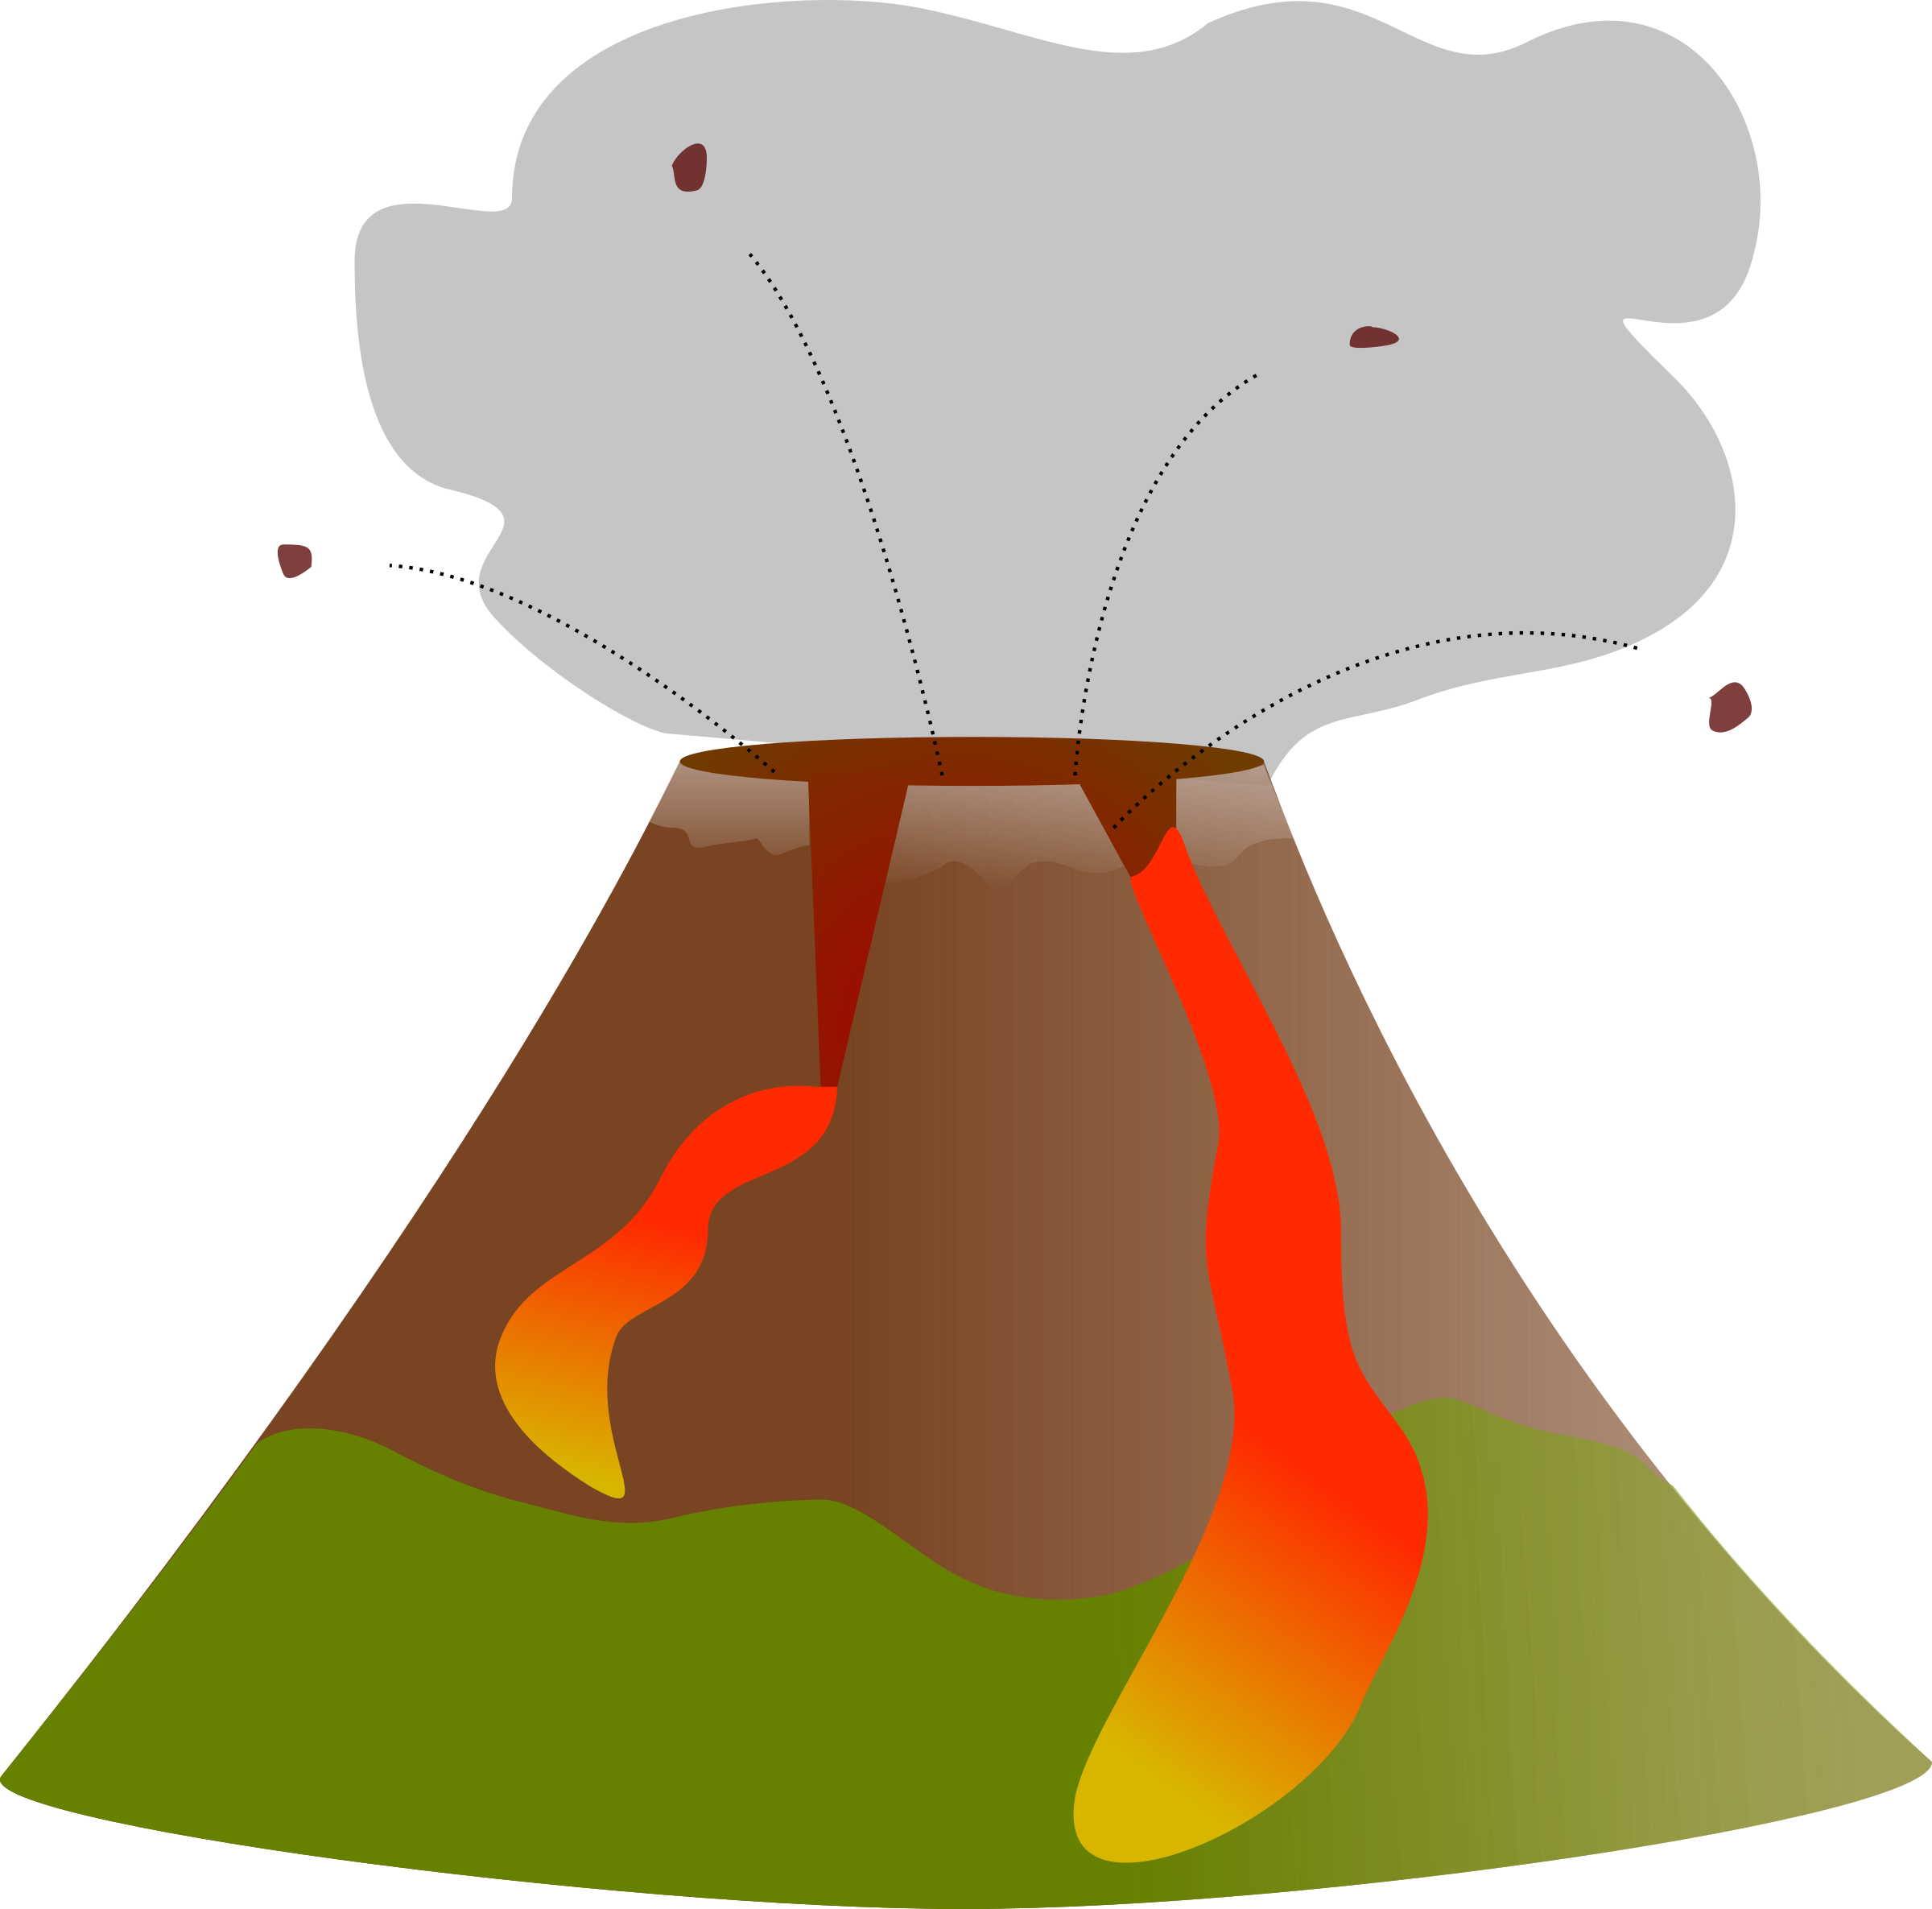 Volcano Diagram by j4p4n